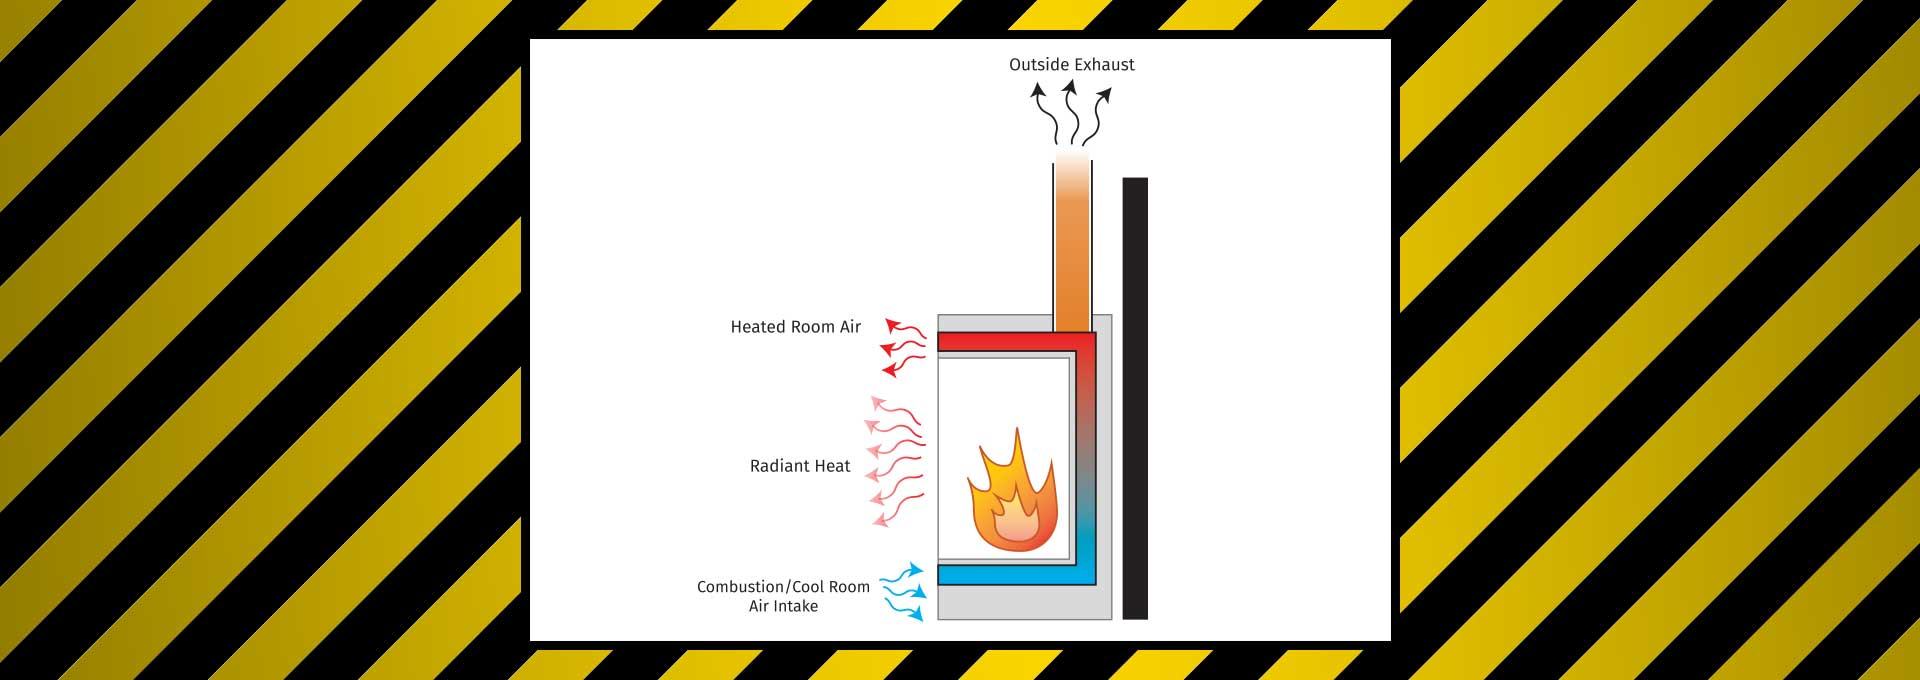 Ventless Fireplaces Explained | Safety of Vent Free Fires